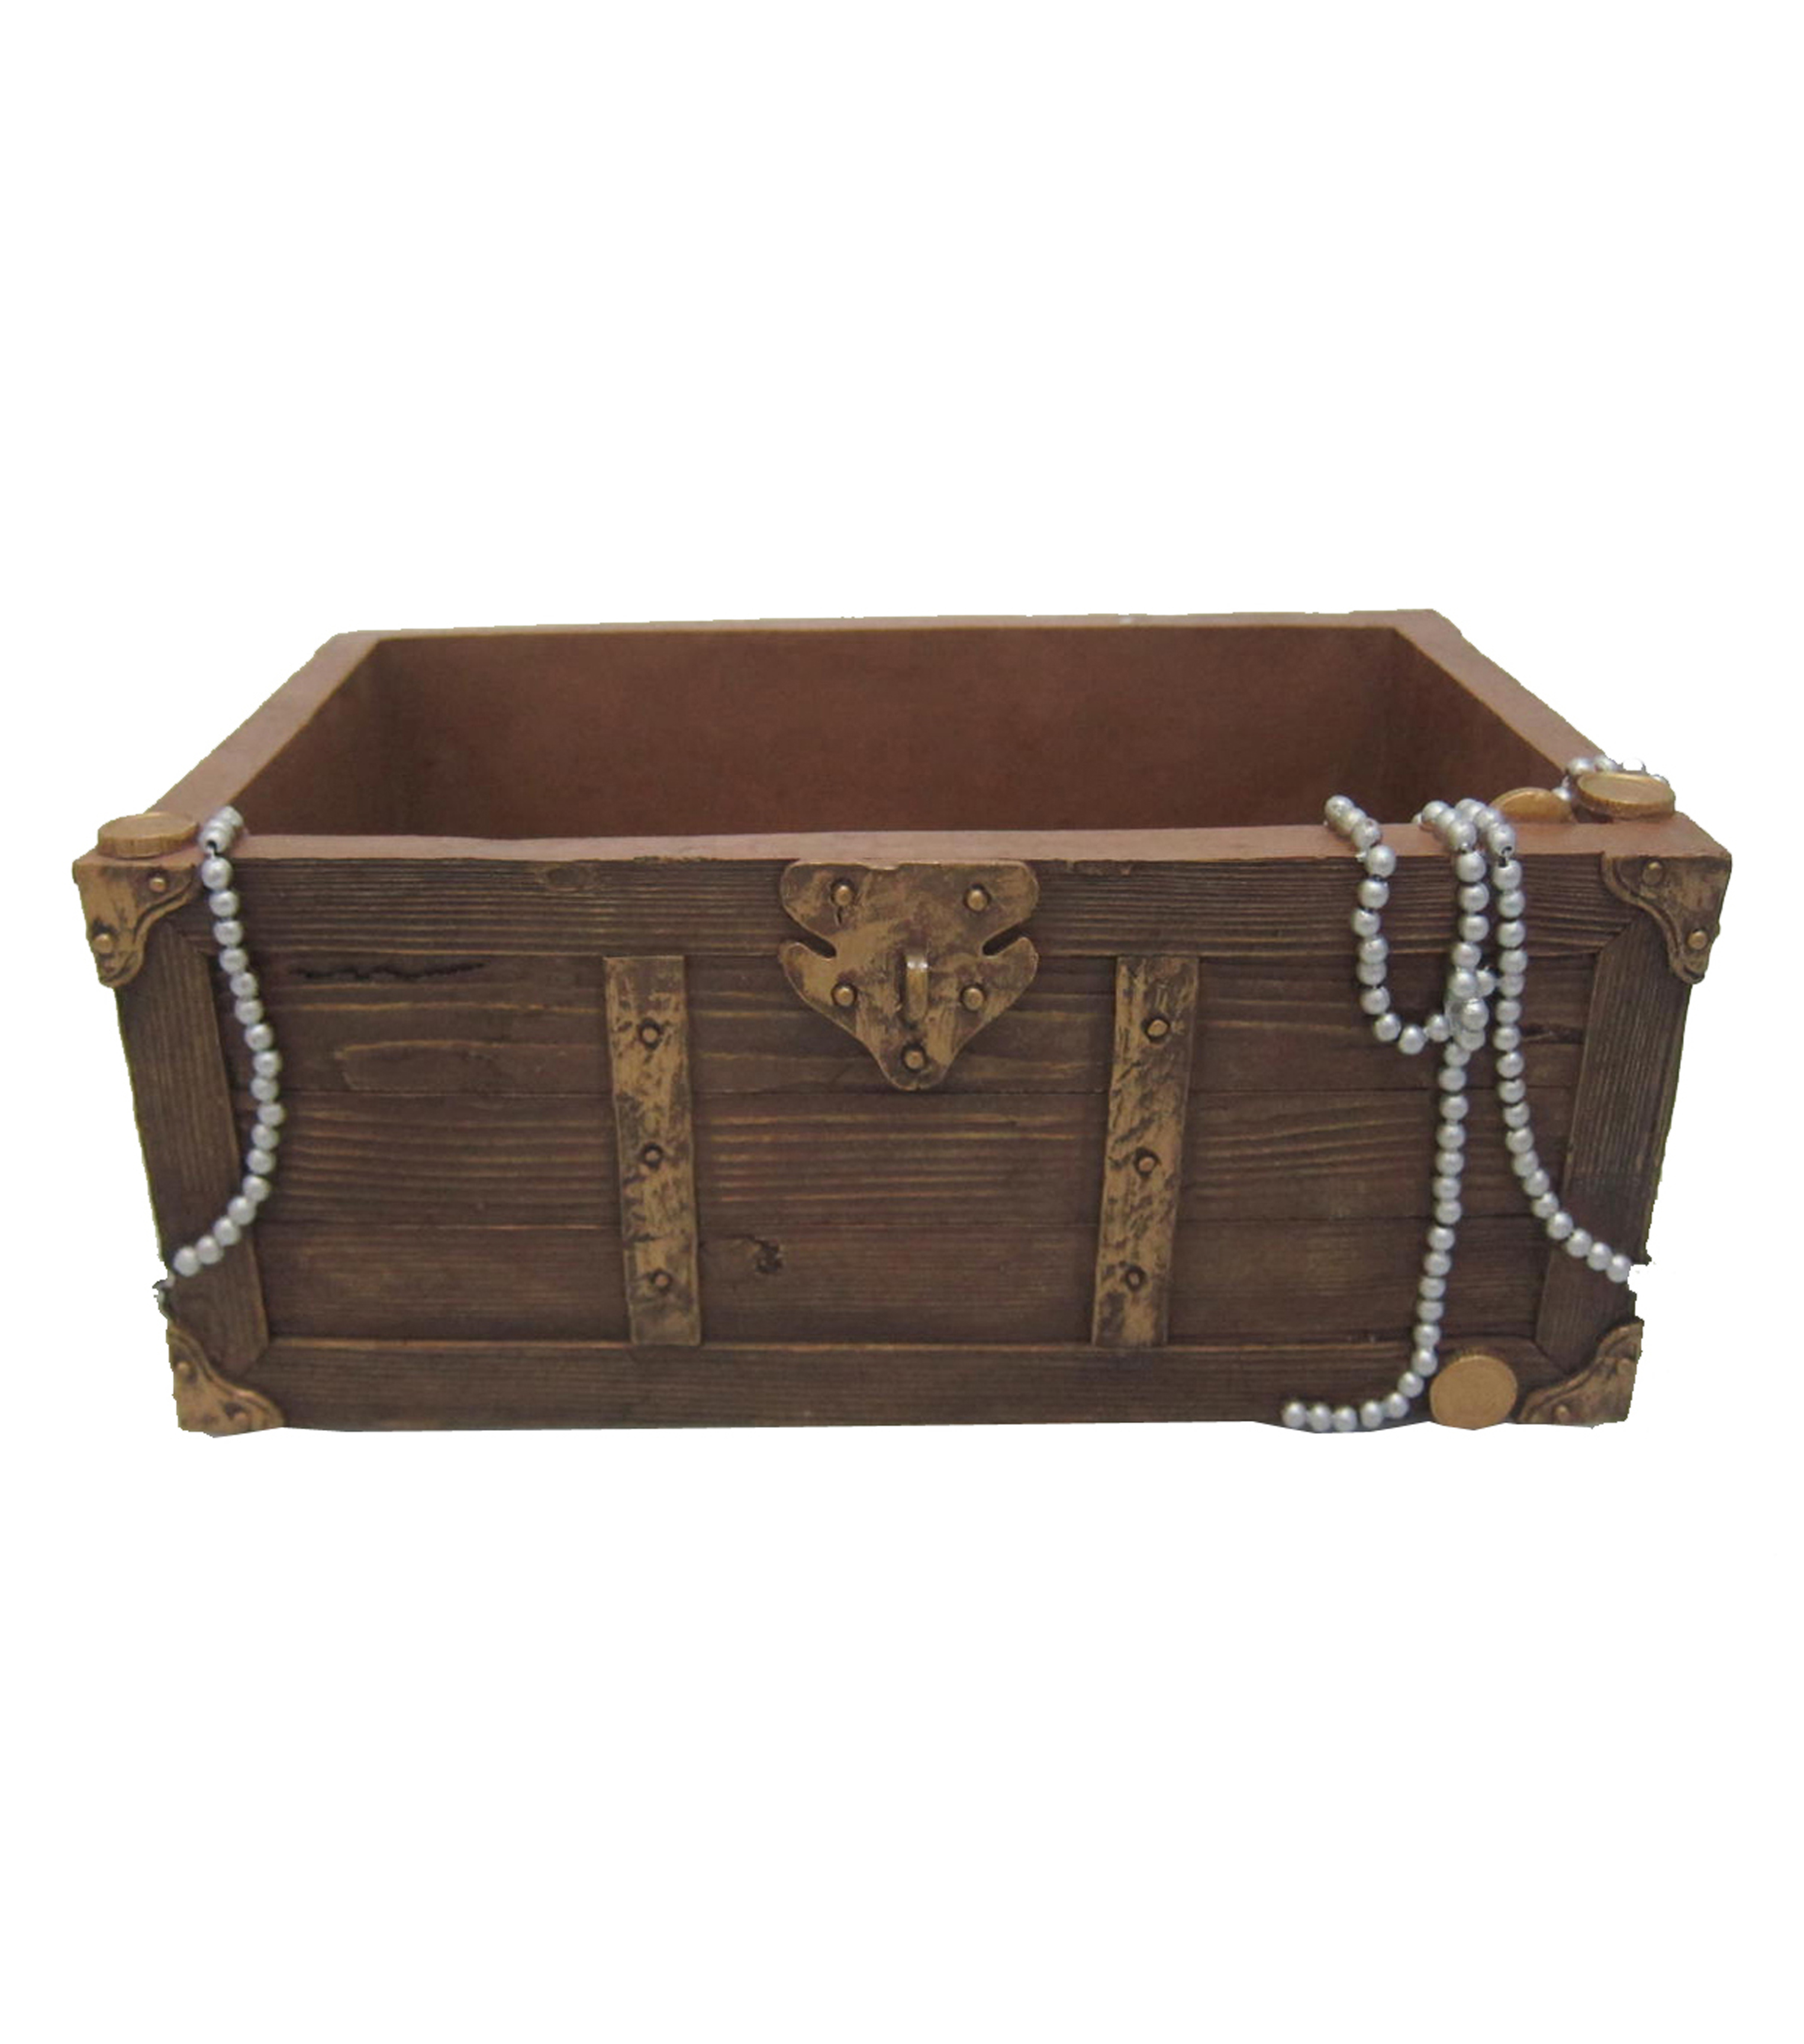 Bloom Room Littles Resin Treasure Chest Container